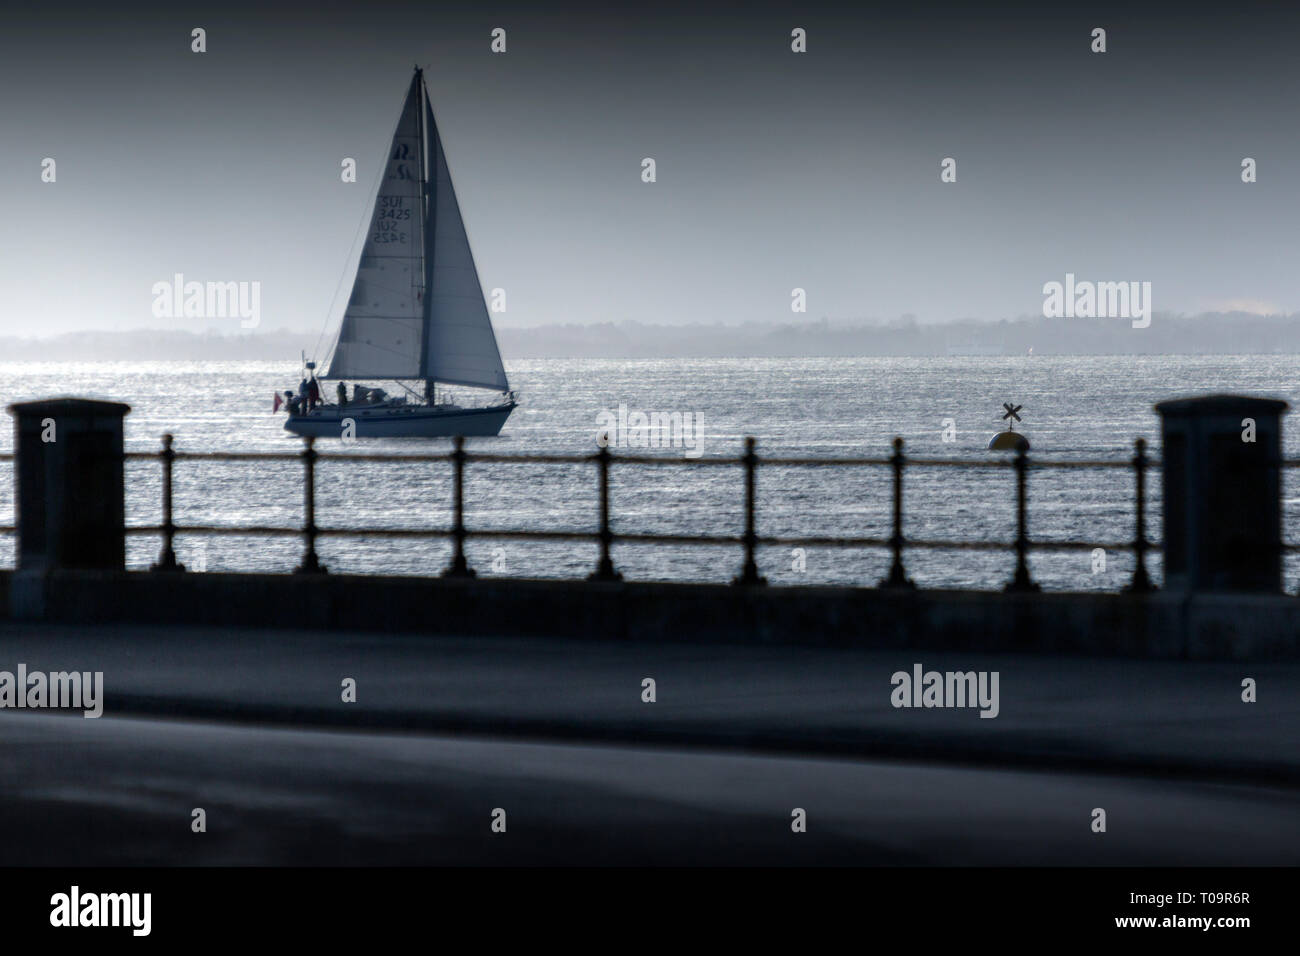 Sailing,Yacht,in,Silhouette,afternoon,racing,cruising,seafront,parade,victoris,The Solent,Cowes, Isle of Wight, England,UK, - Stock Image